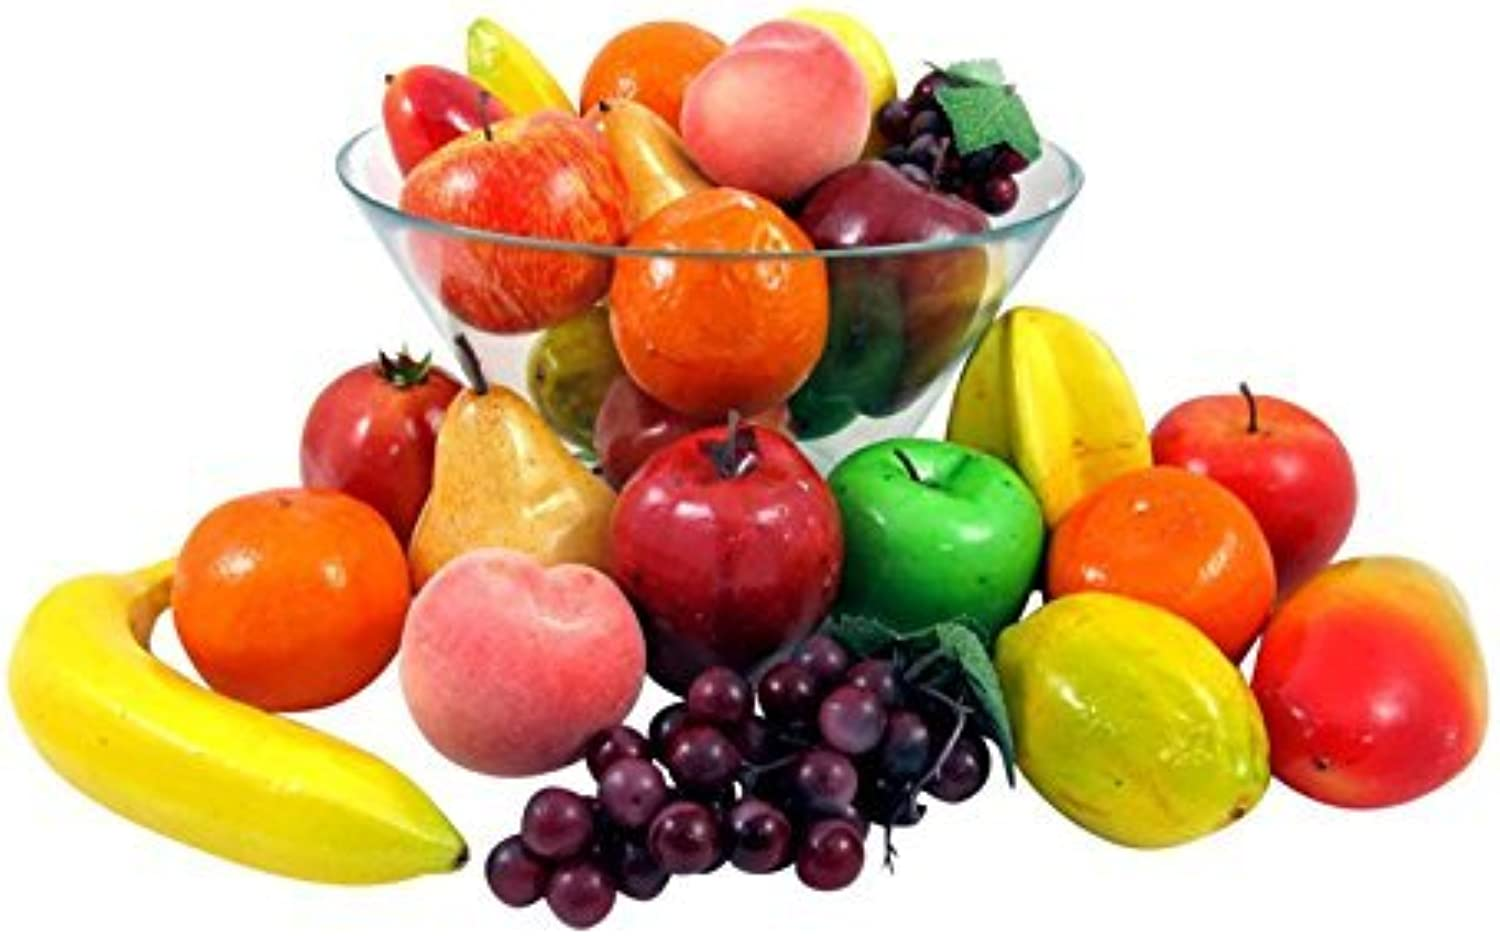 Set of 26 Realistic Artificial Fruits Play Food Set by Liberty Imports